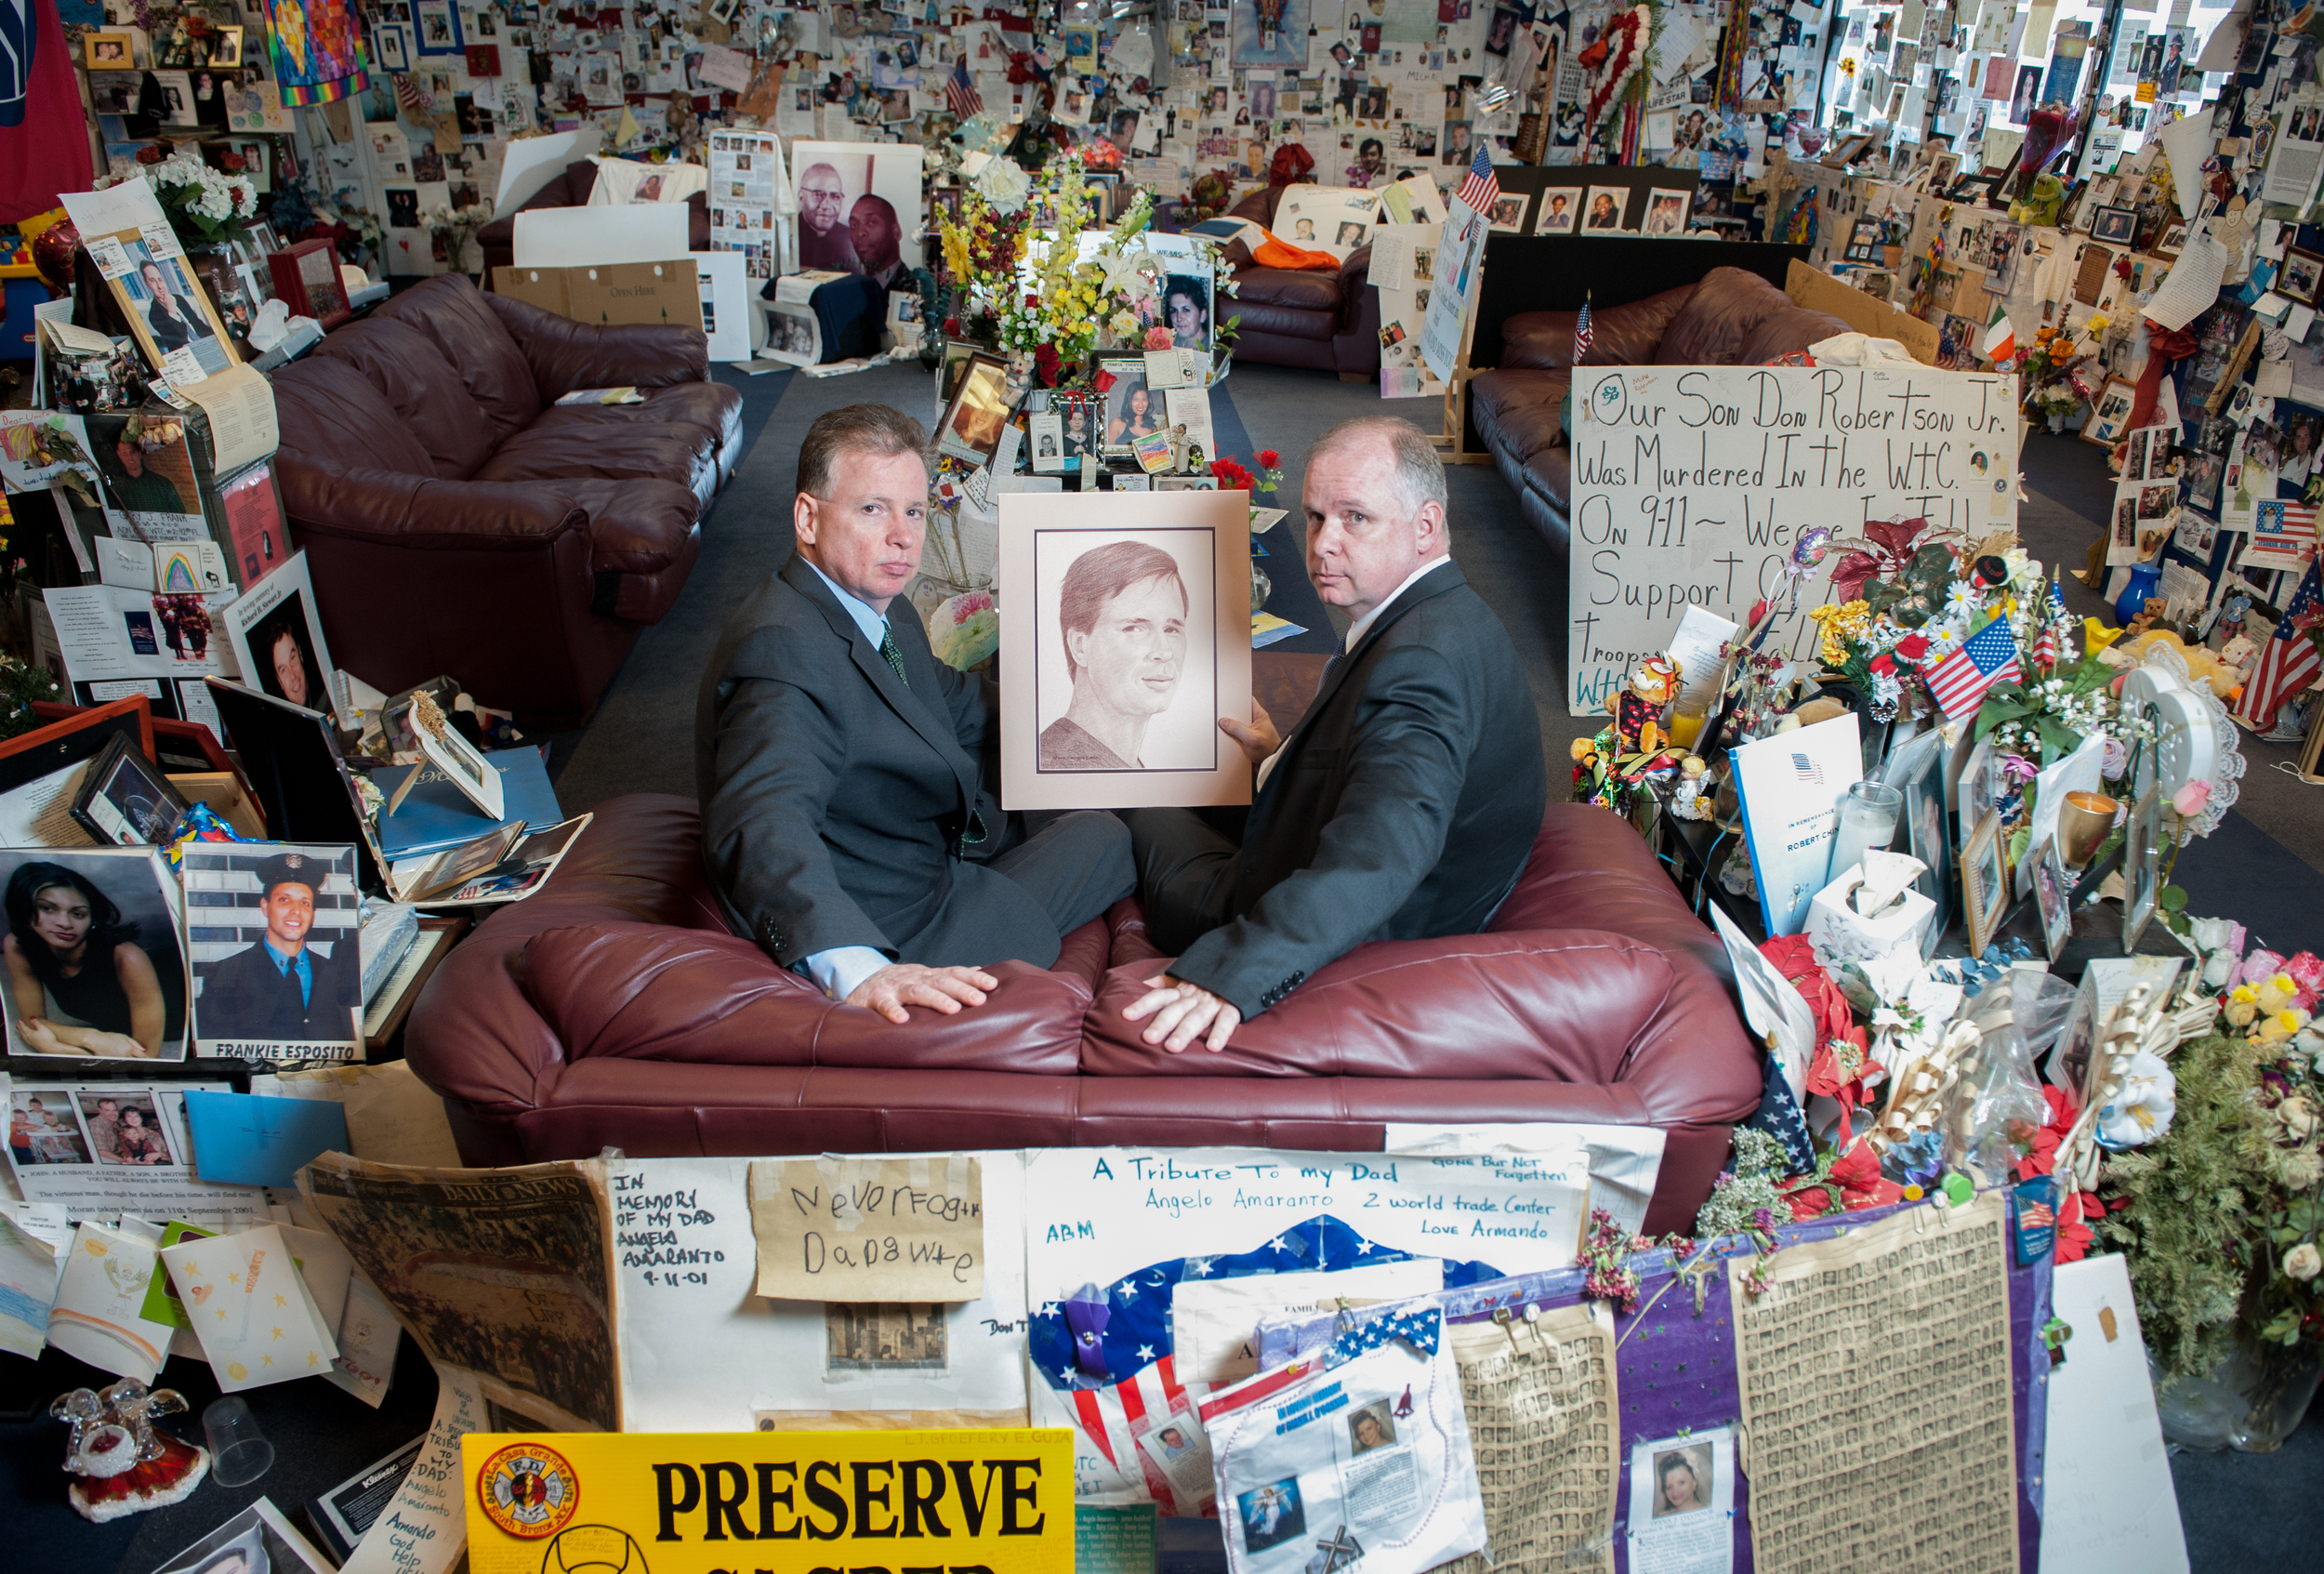 Tom and John Owens hold a sketch of their brother, Pete, in the One Liberty Plaza Family Room overlooking the World Trade Center site. The room provides a privatecontemplation areafor families of the victims as they approach the tenth anniversary of the 9/11 attacks.